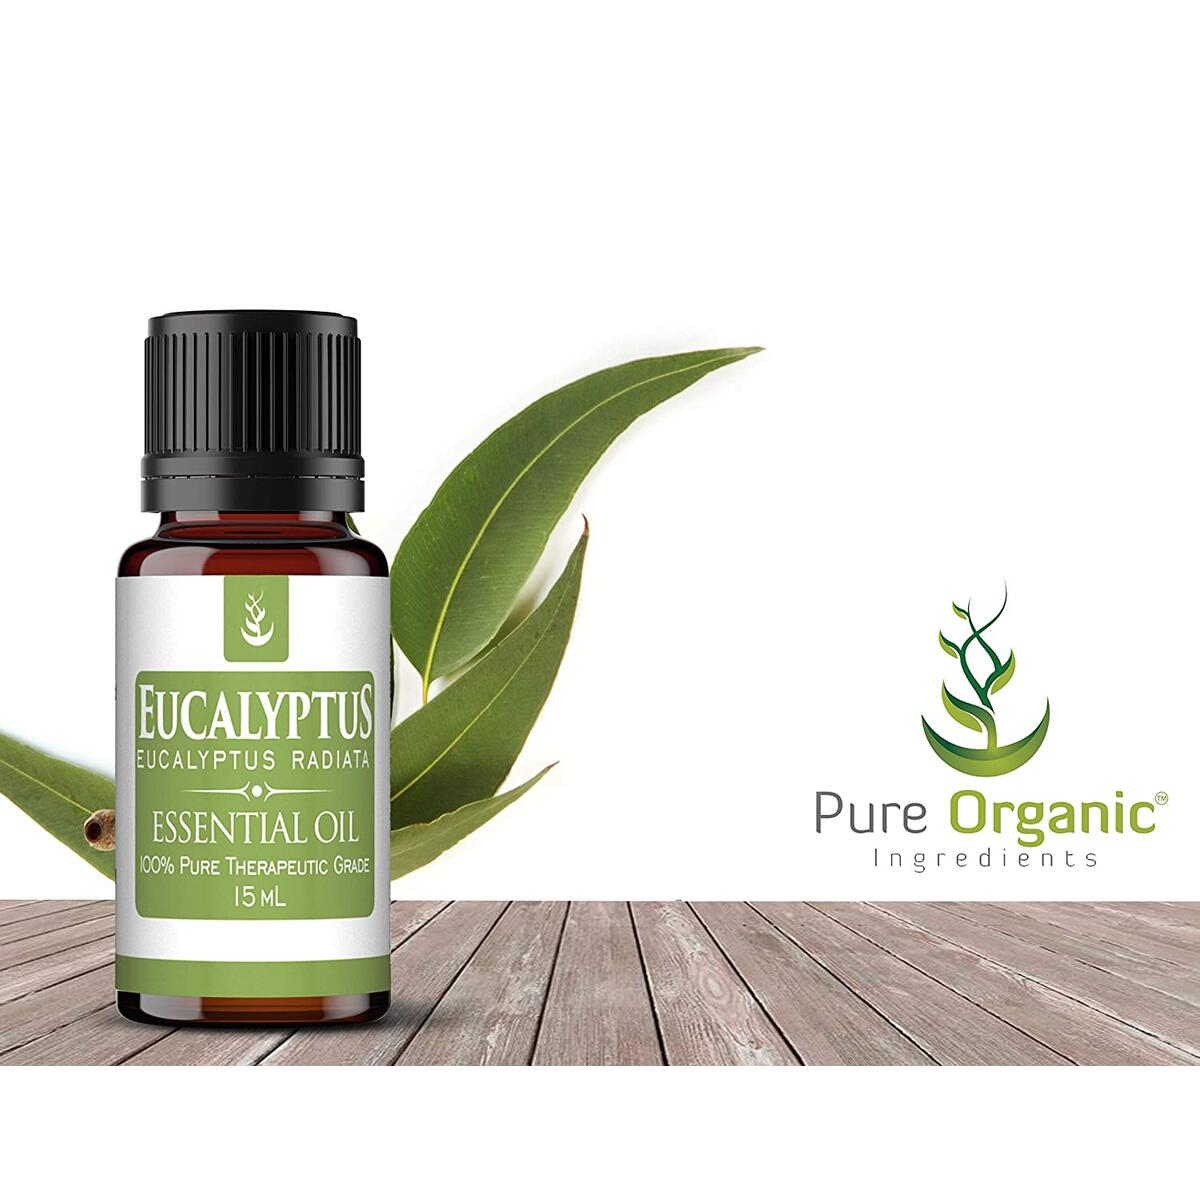 Eucalyptus Essential Oil (15 ml) by Pure Organic Ingredients, Clean Surfaces & Purify the Air, Help Promote Feelings of Relaxation & Clear Breathing, Fresh & Invigorating Aroma